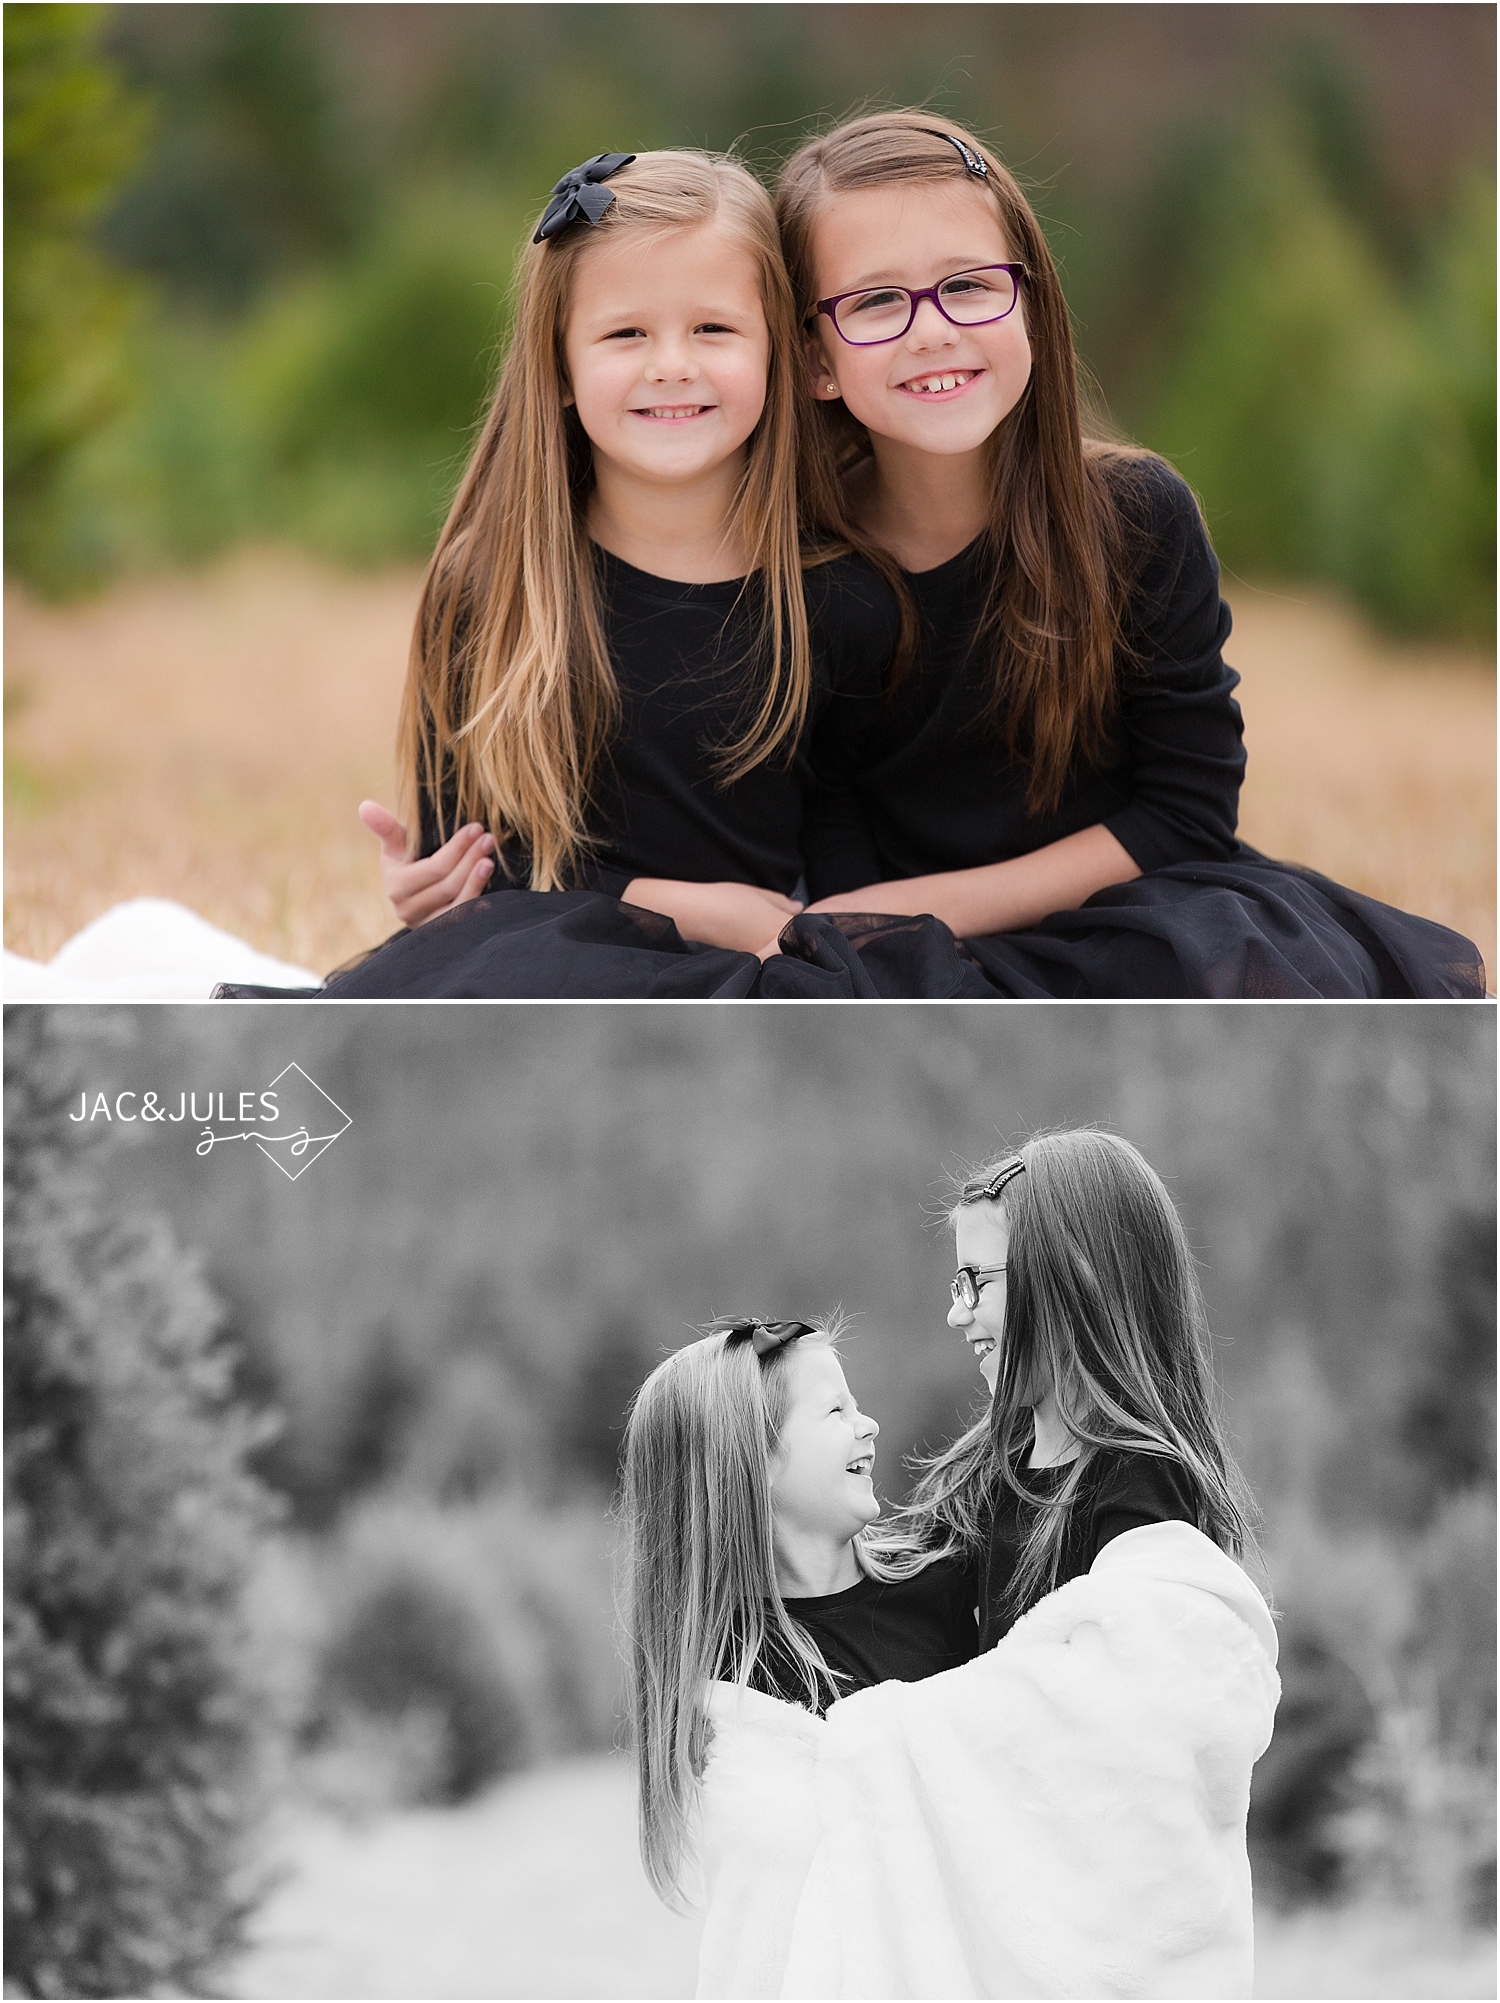 jacnjules photographs adorable girls for their holiday photos at lone silo tree farm in NJ